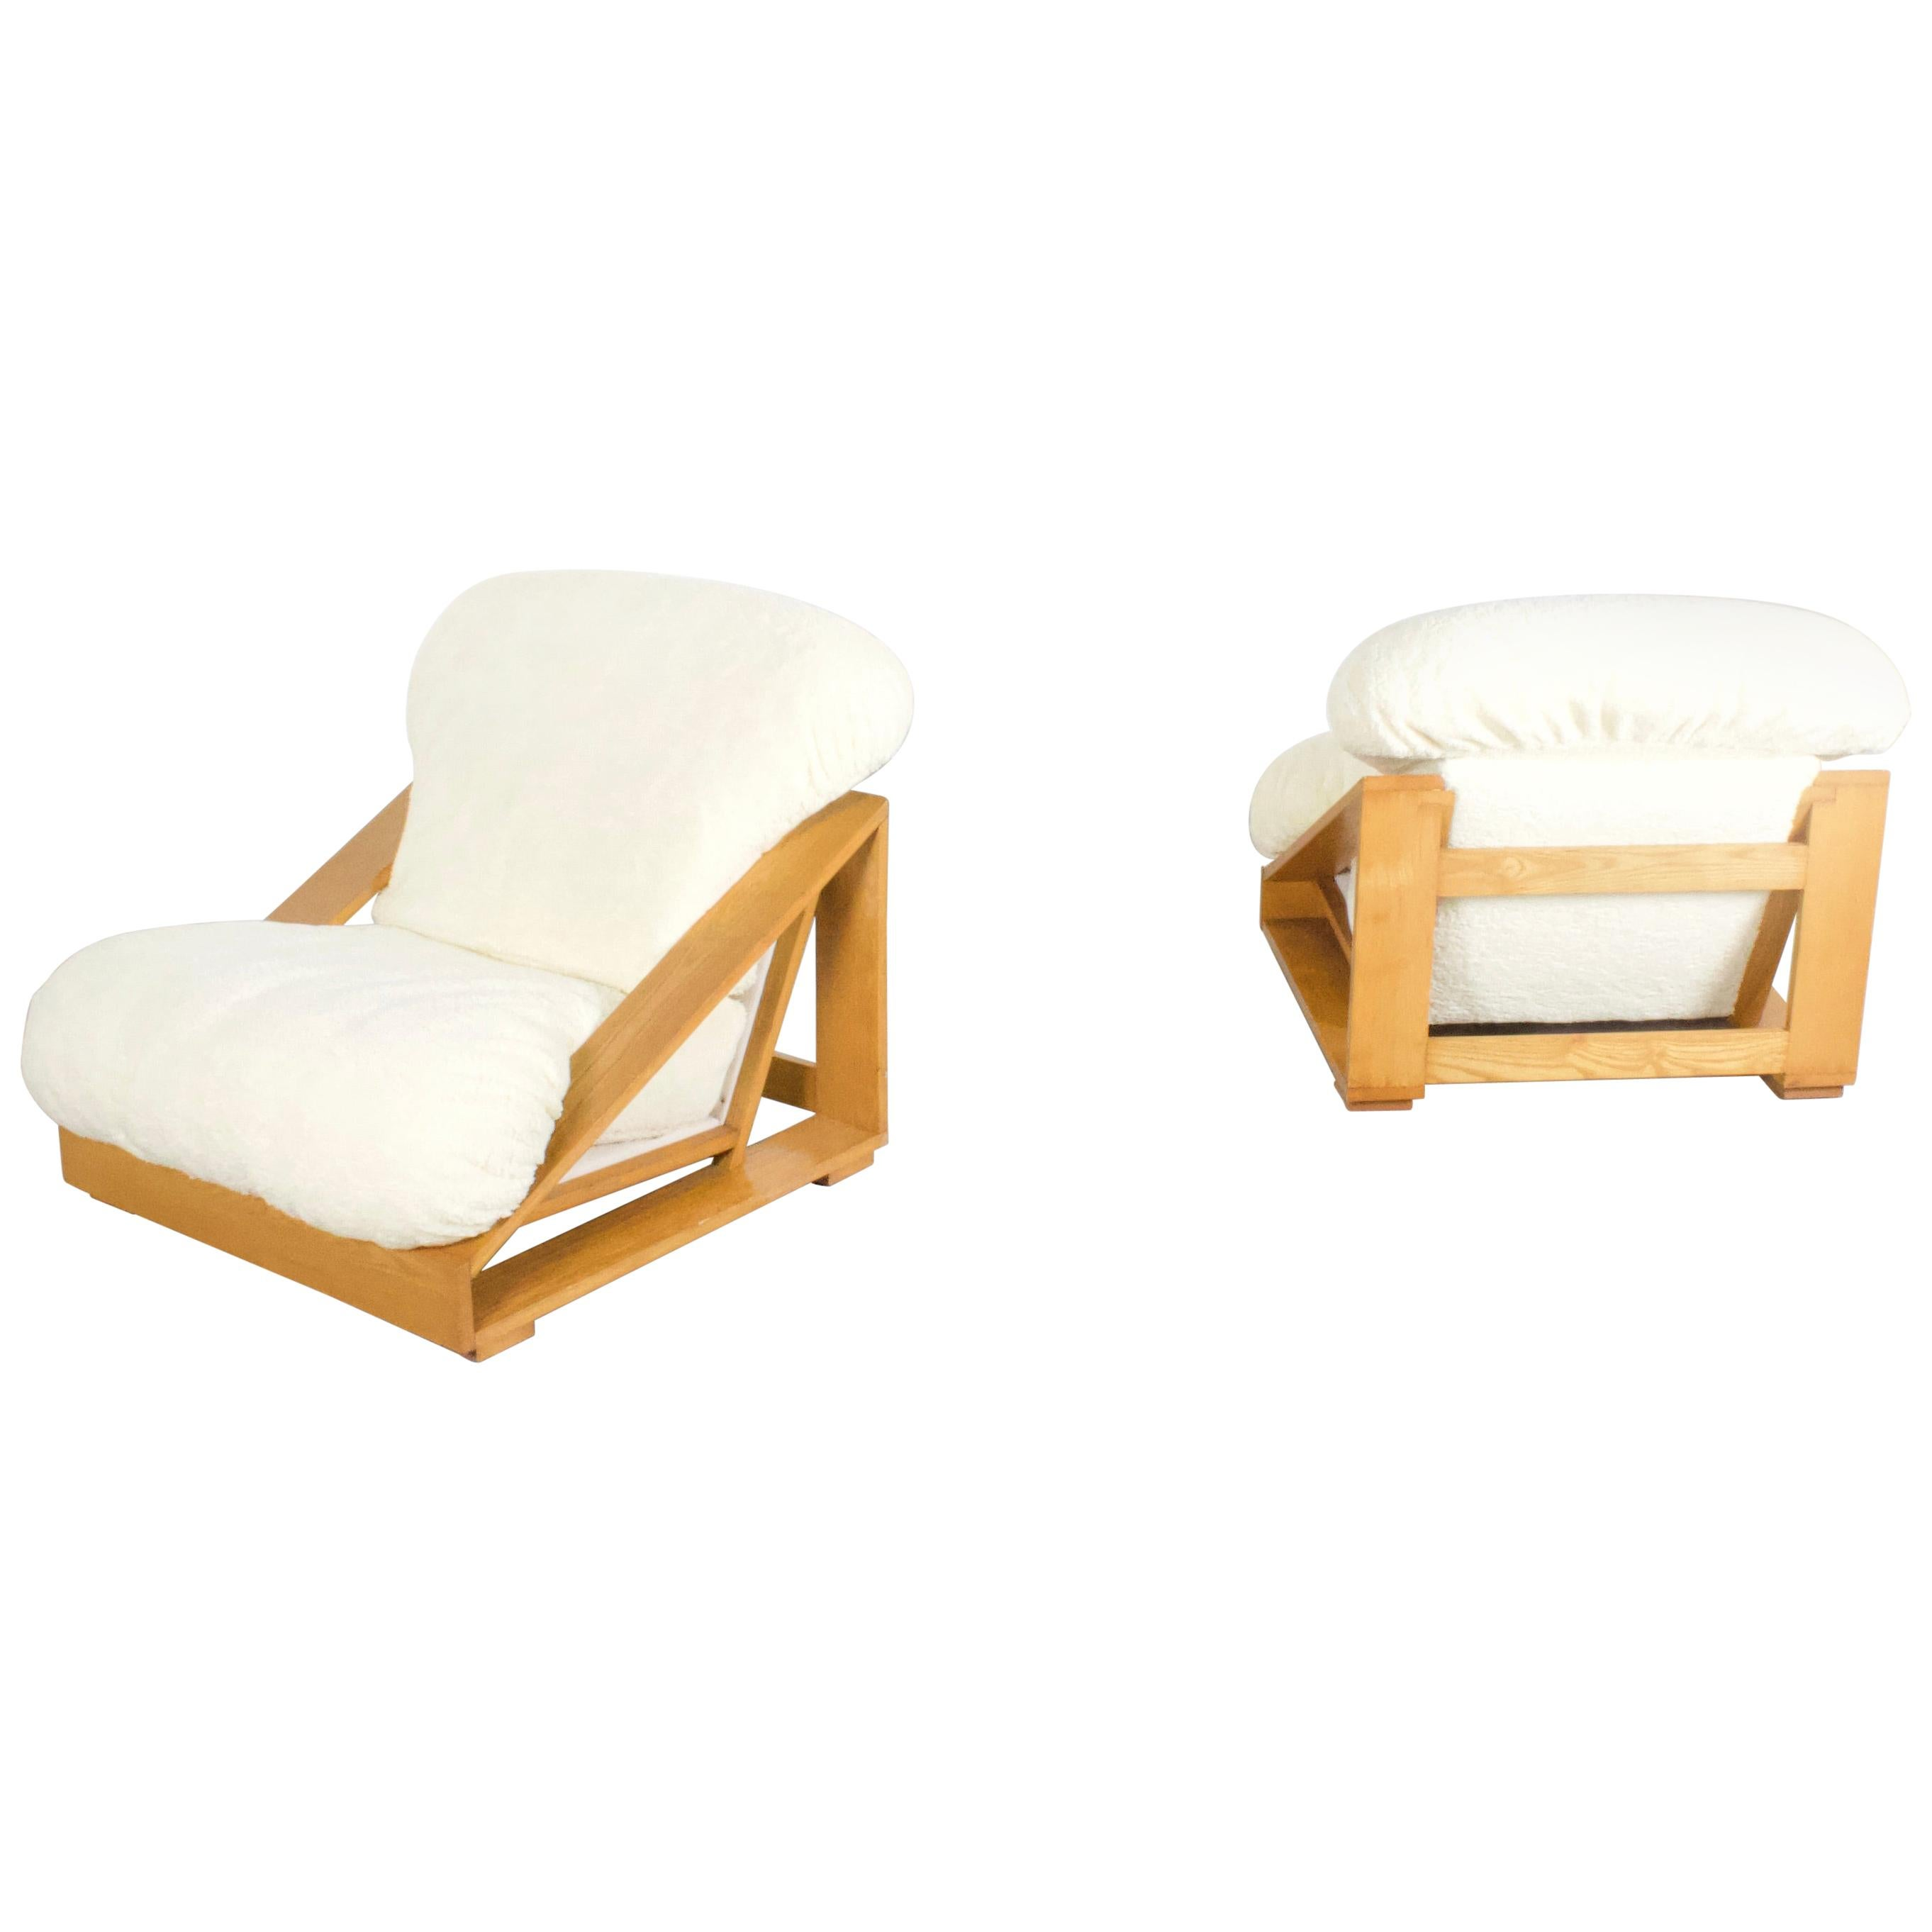 Set of Exceptional Italian Pine and Teddy Fur Lounge Chairs, 1970s